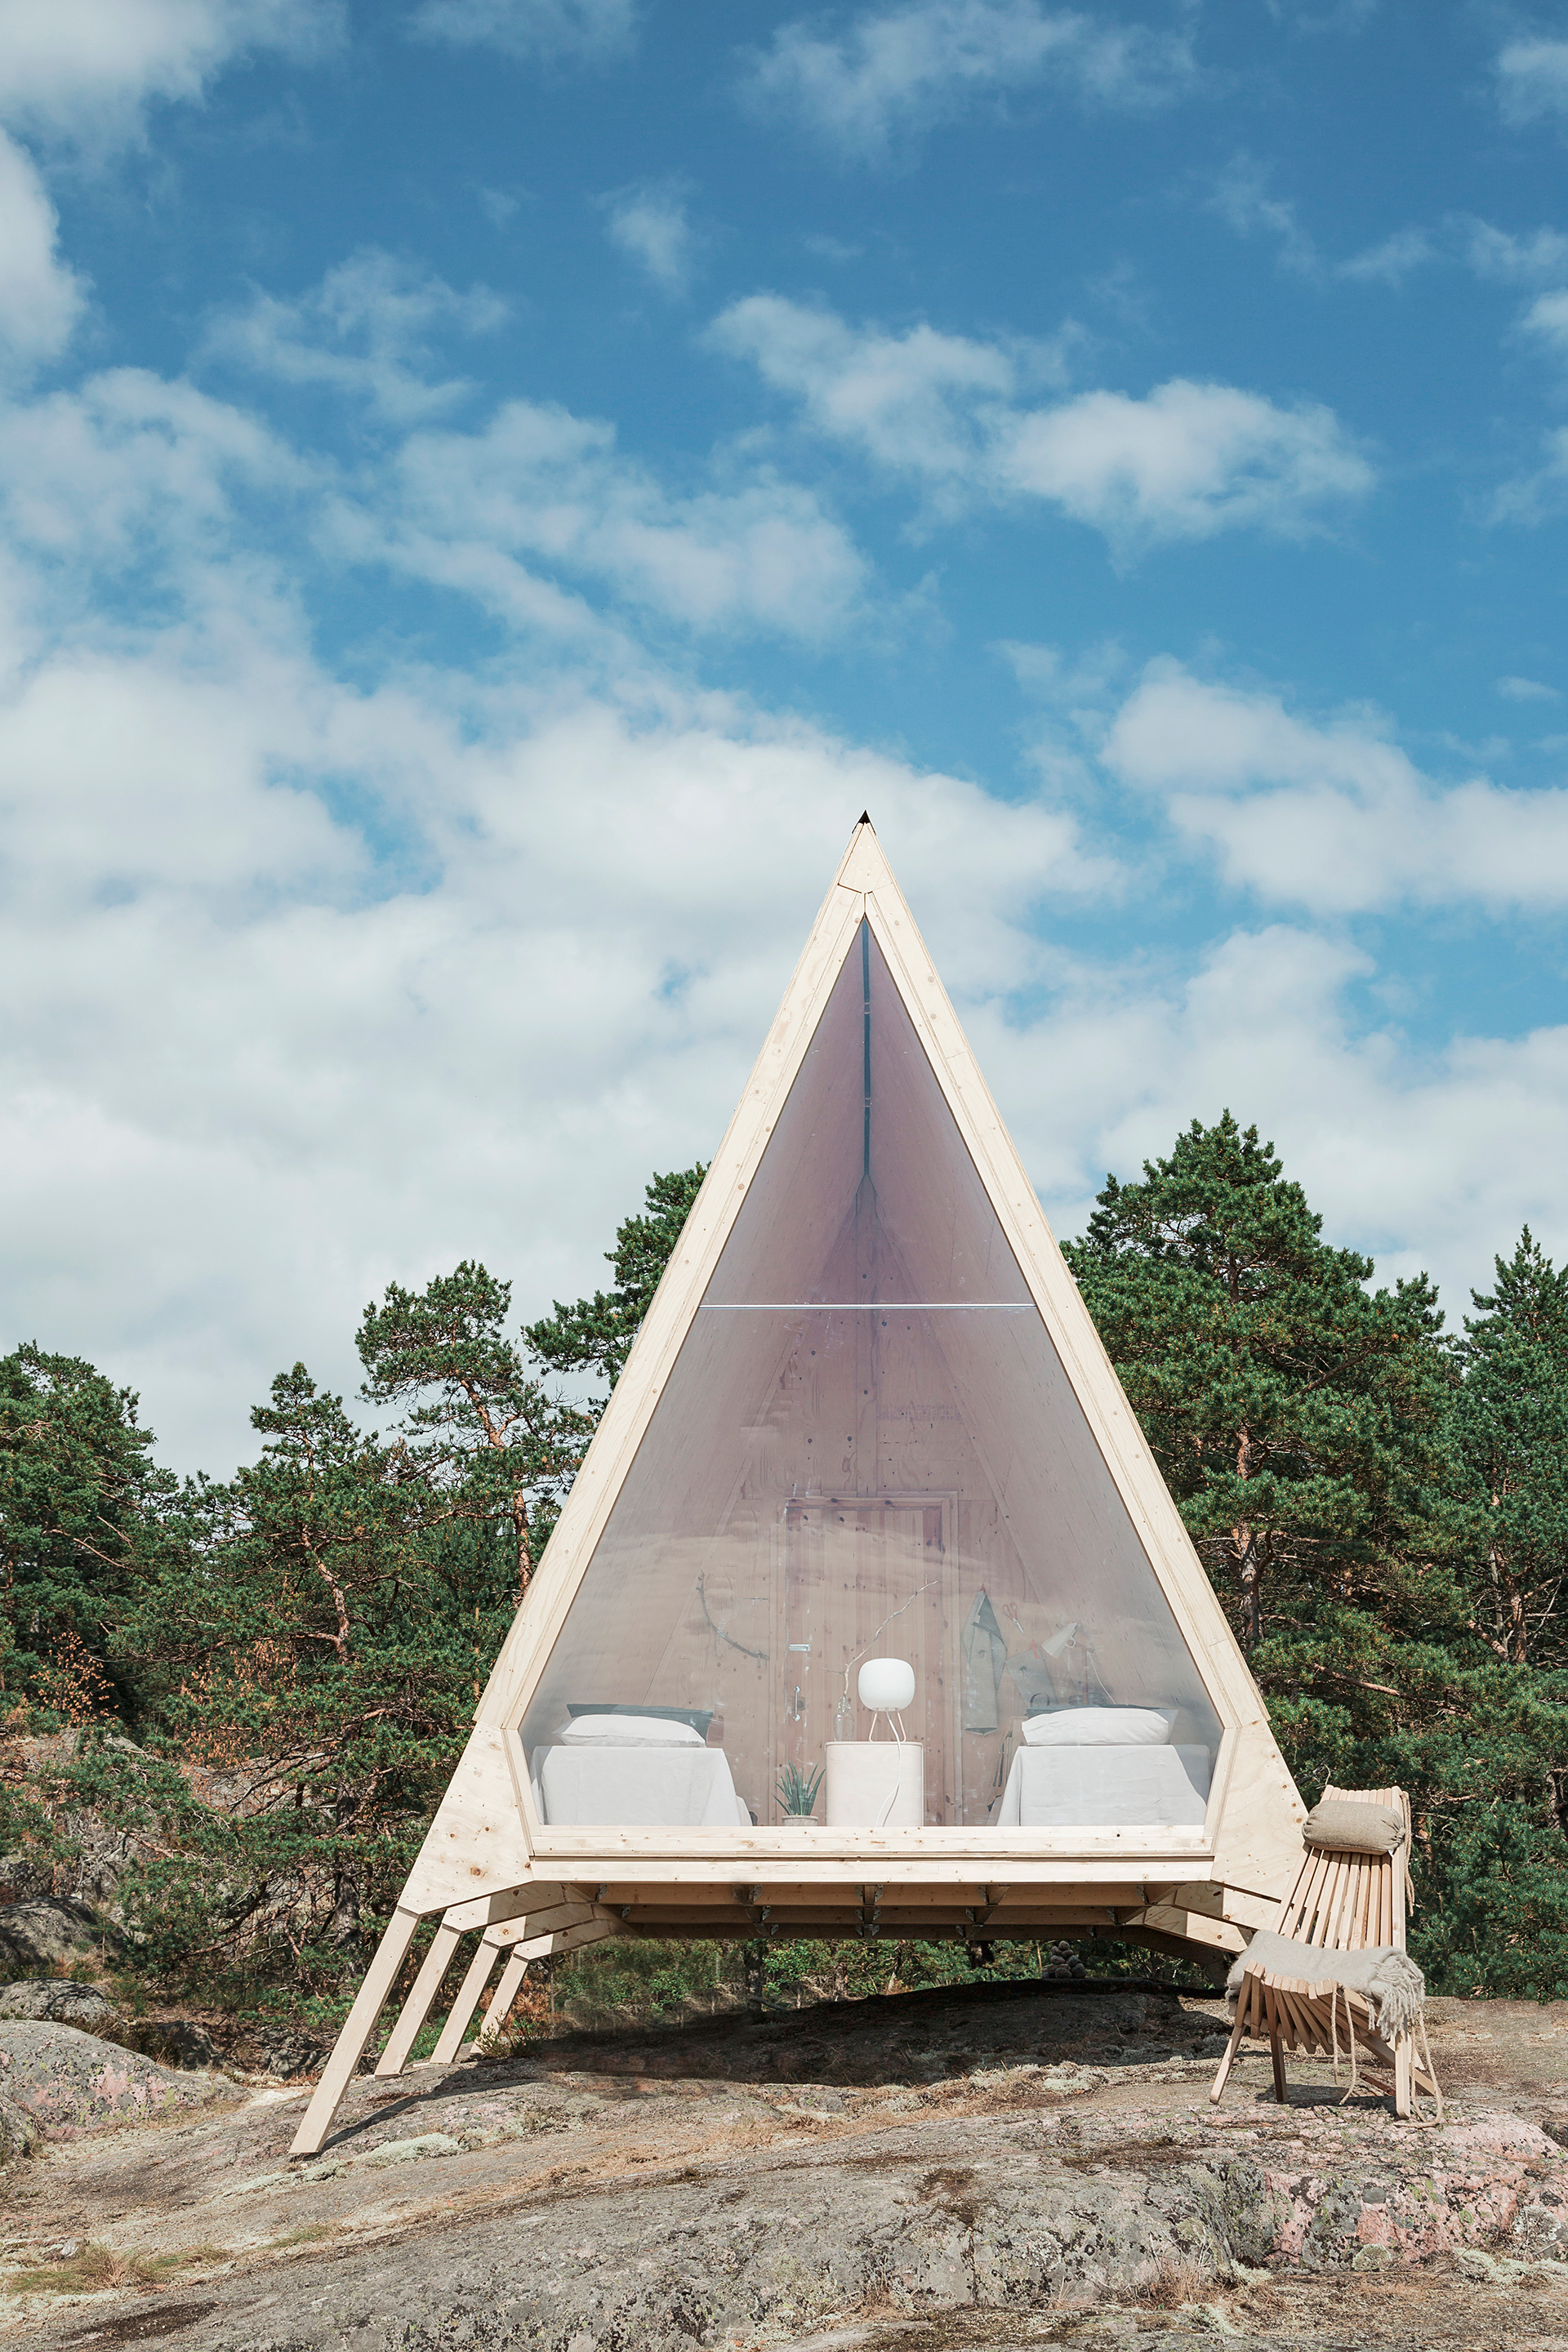 Nolla Cabin by Finnish company Neste, designed by Robin Falck | Diversity in living, a changing lifestyle| STIRworld